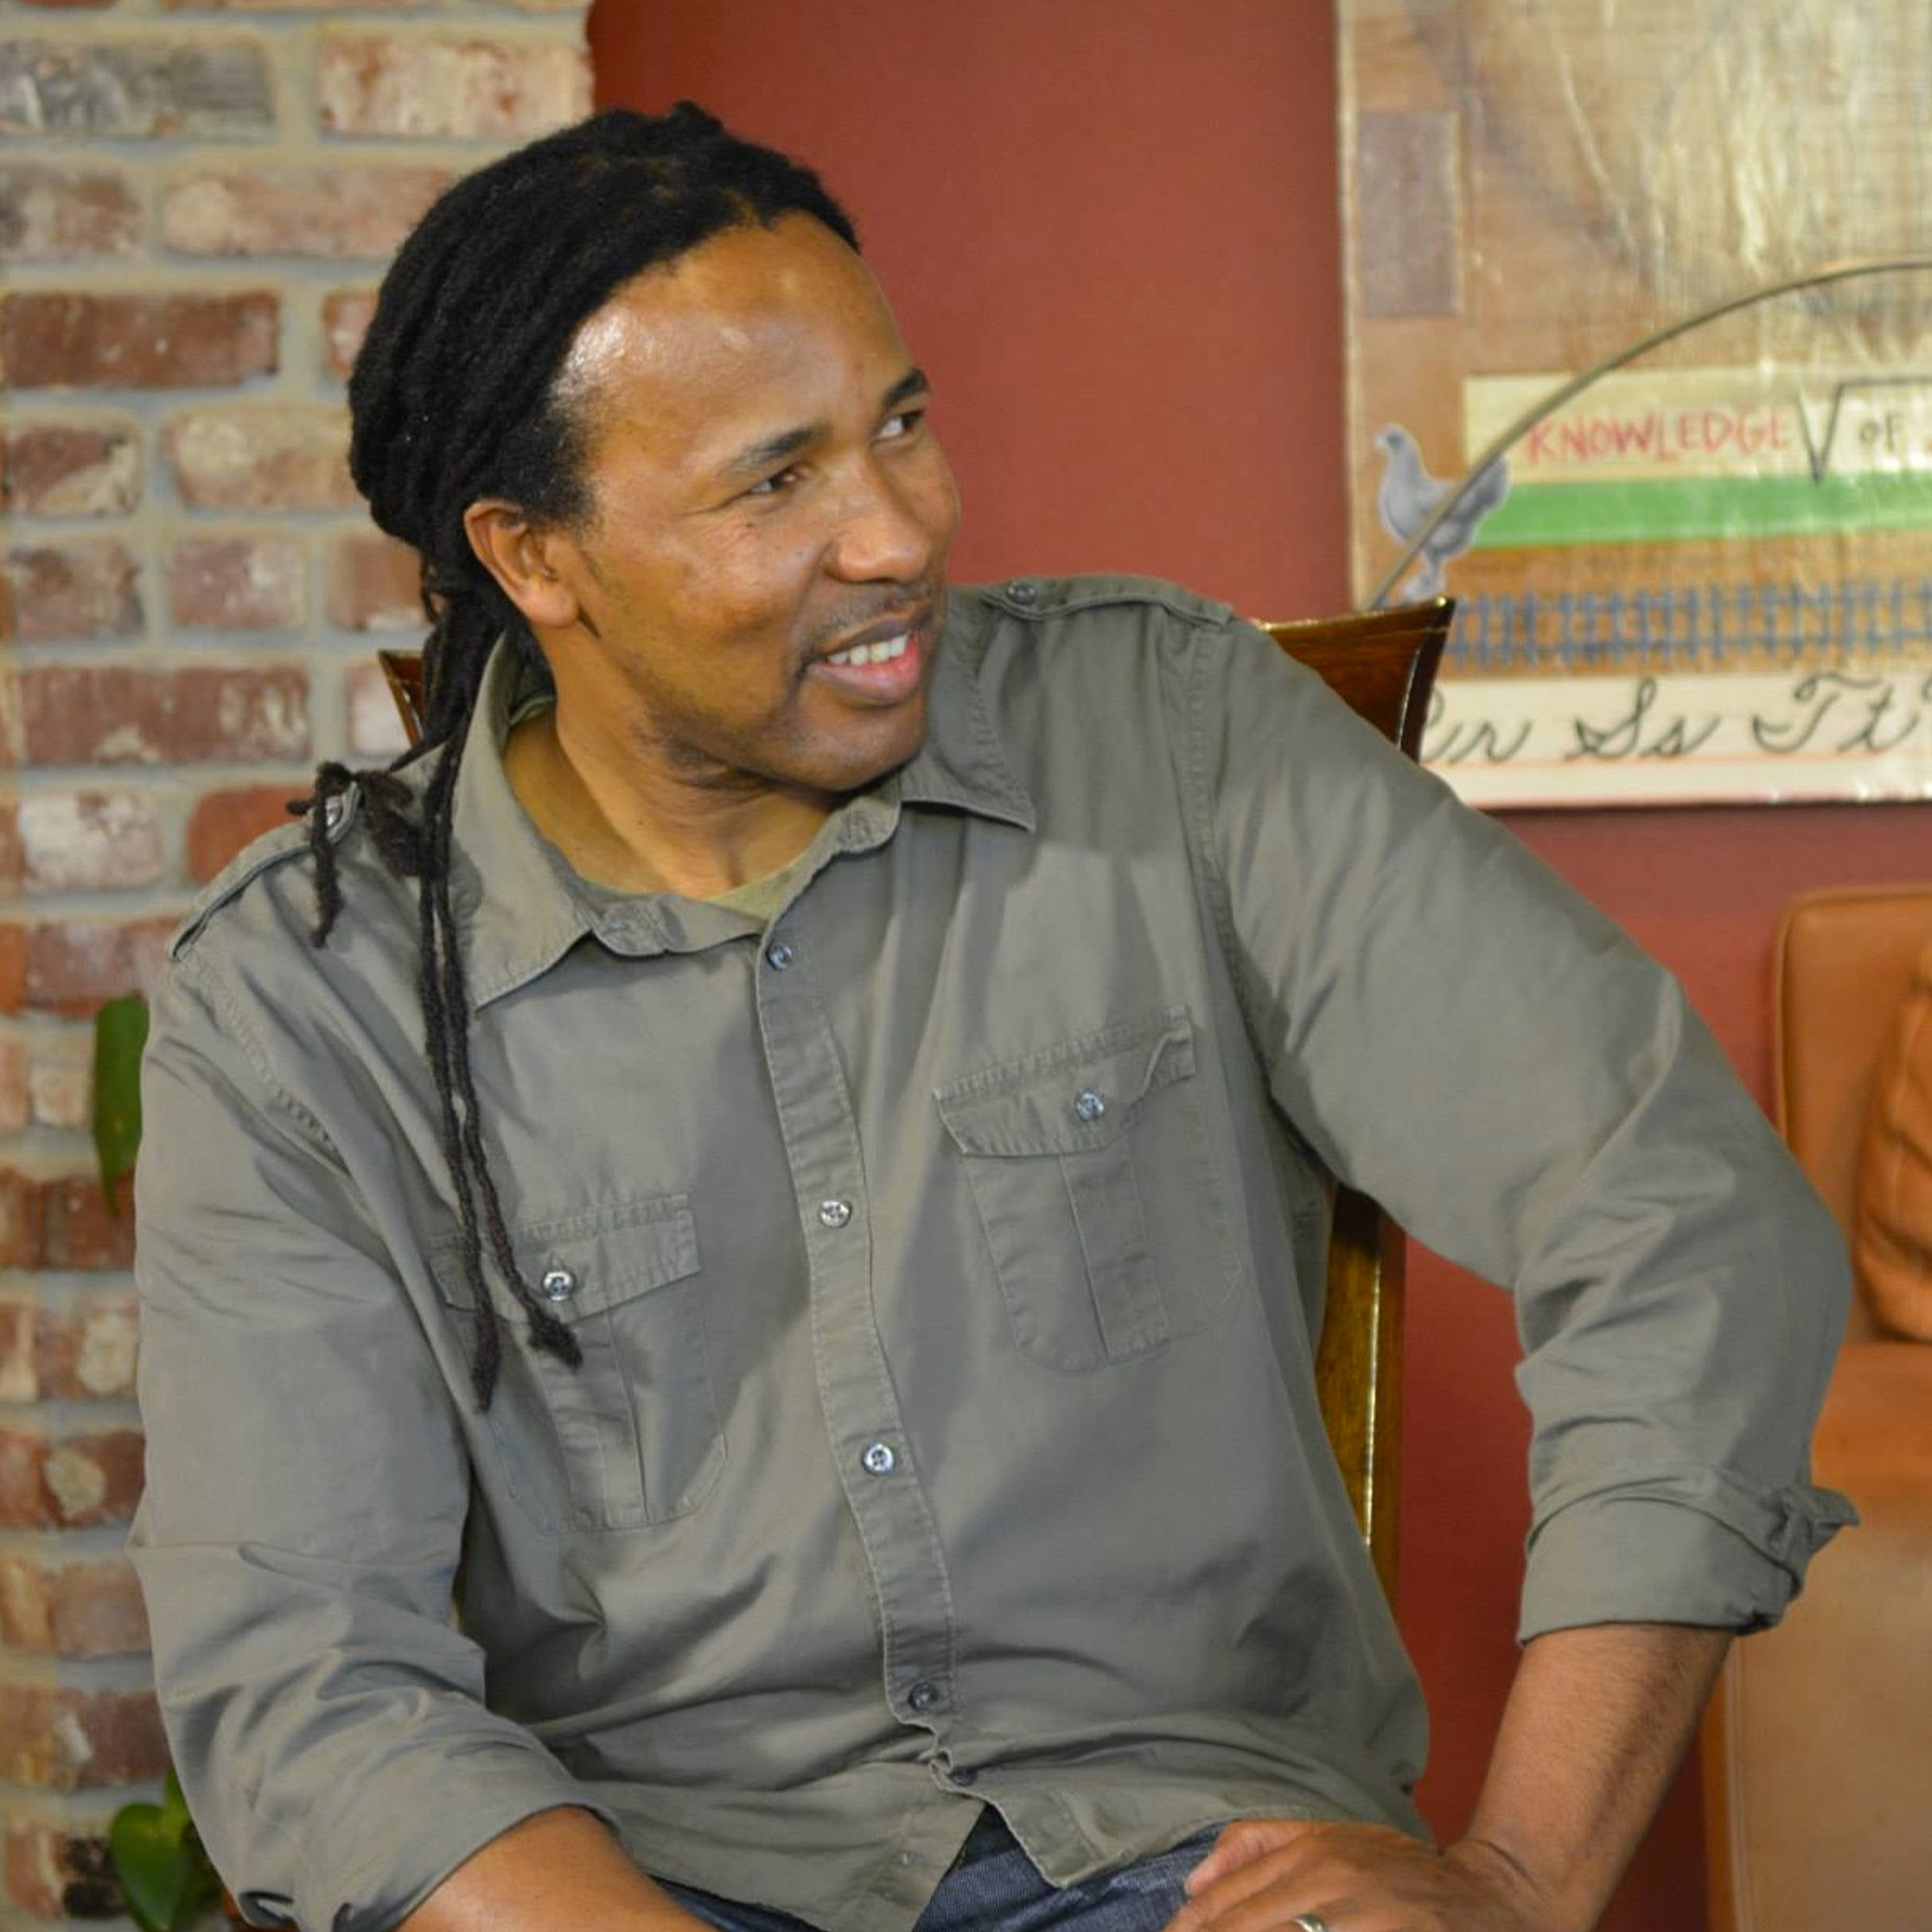 """District #2Sonny Walebowa - Sonny was born in Botswana, then moved to the United States in 1997 on a scholarship. Sonny holds a BFA in Film and Television Production and a Masters in Human Services specializing in Executive Leadership. As a theater group facilitator, he engaged incarcerated creators and volunteers in a national award-winning 12 week art-therapy program. Recently, he developed a program for Sacramento Urban League called """"UBUNTU."""" Sonny is President of Vangoland Enterprises, a media company which focuses on storytelling and Botswana Tourism. In addition to writing fiction and screenplays for young readers, Sonny has written a biography on Nelson Mandela. He also speaks regularly at conferences on Storytelling and Technology."""